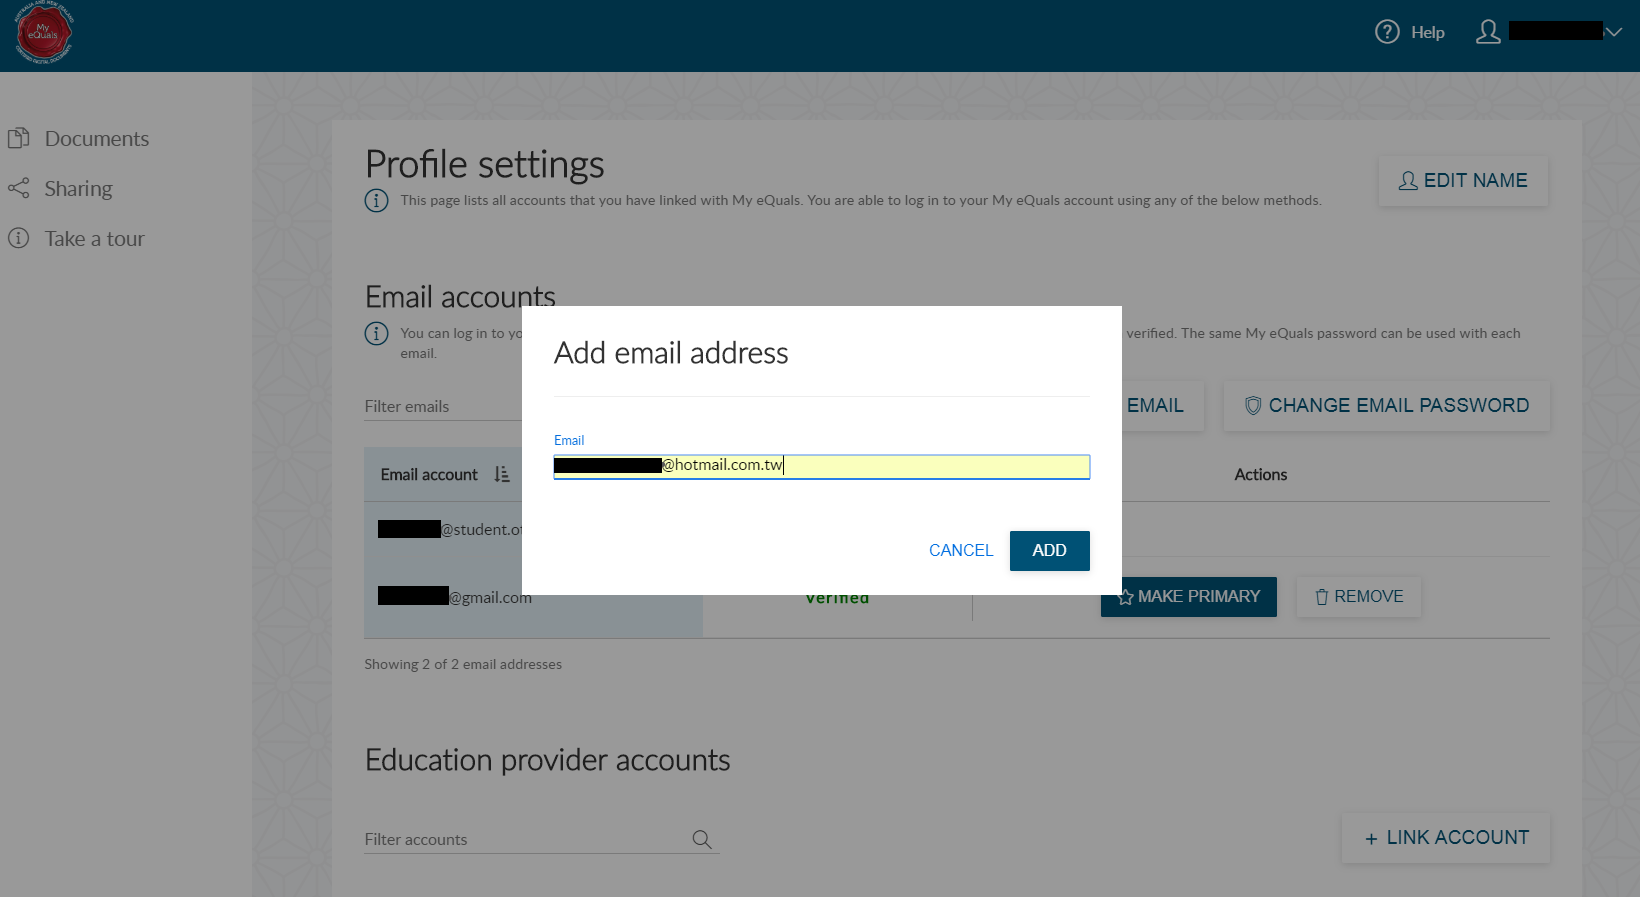 Adding another email address in My eQuals